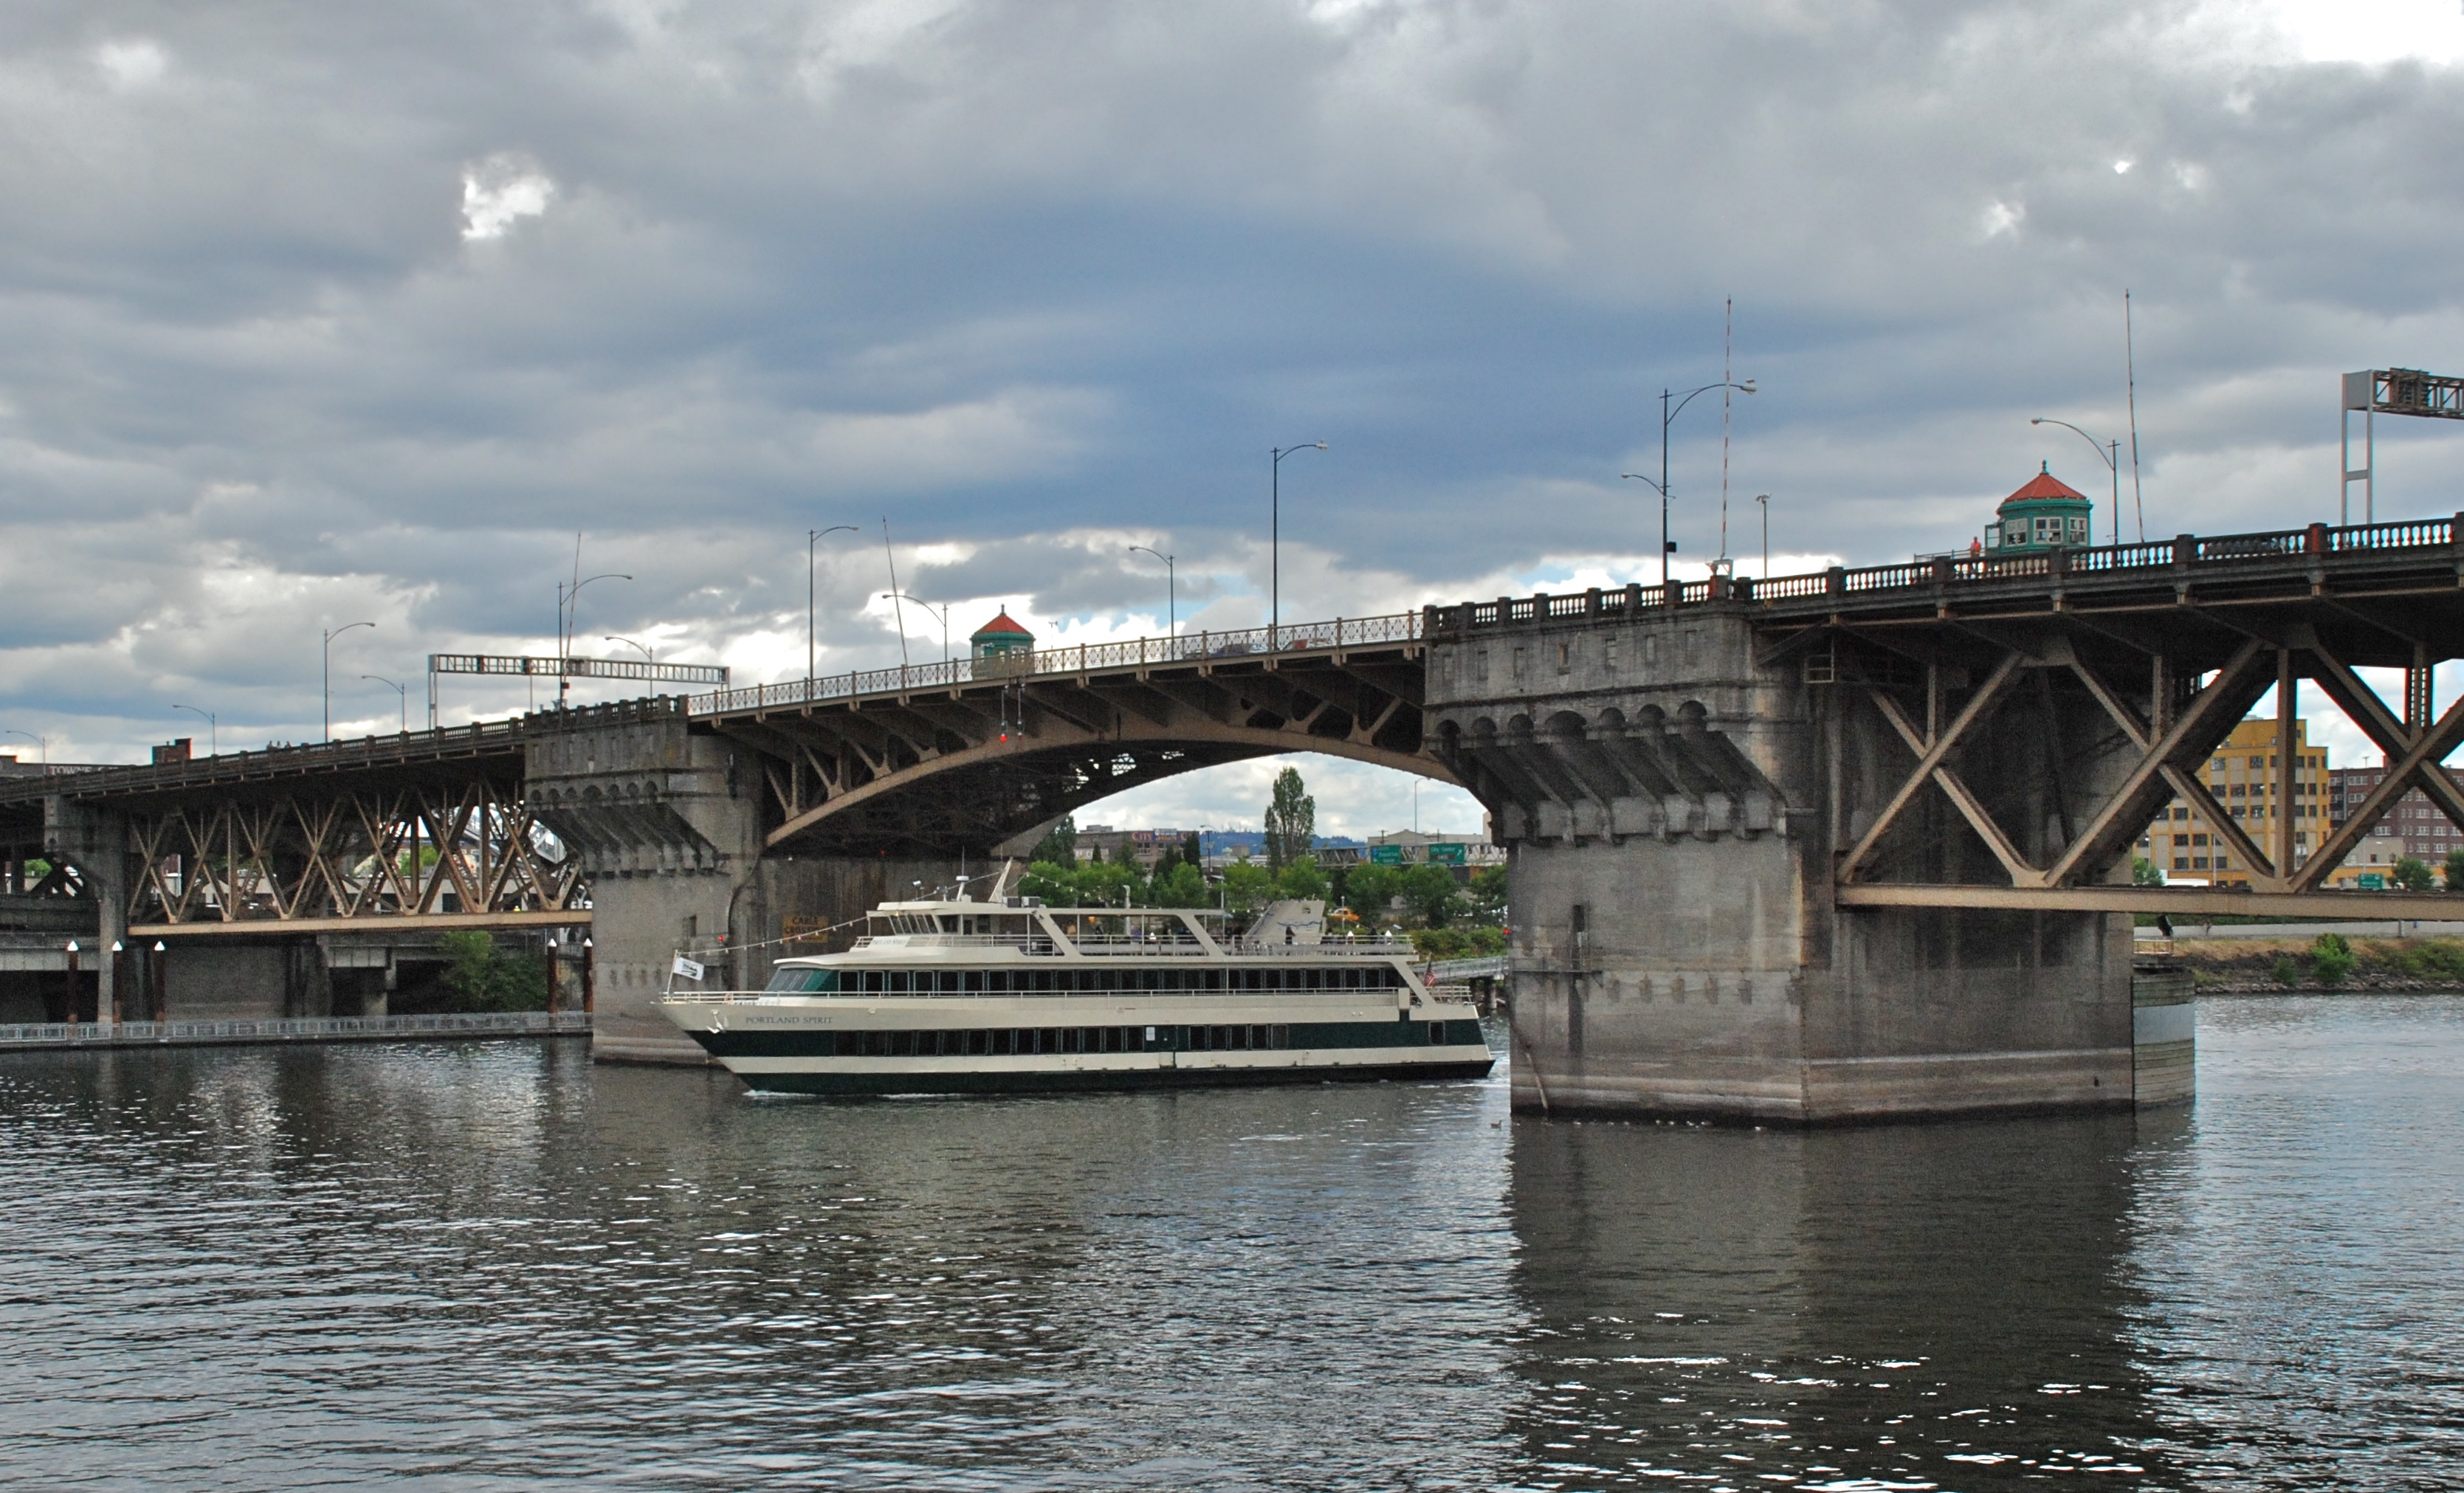 Burnside Bridge today (wikimedia commons)